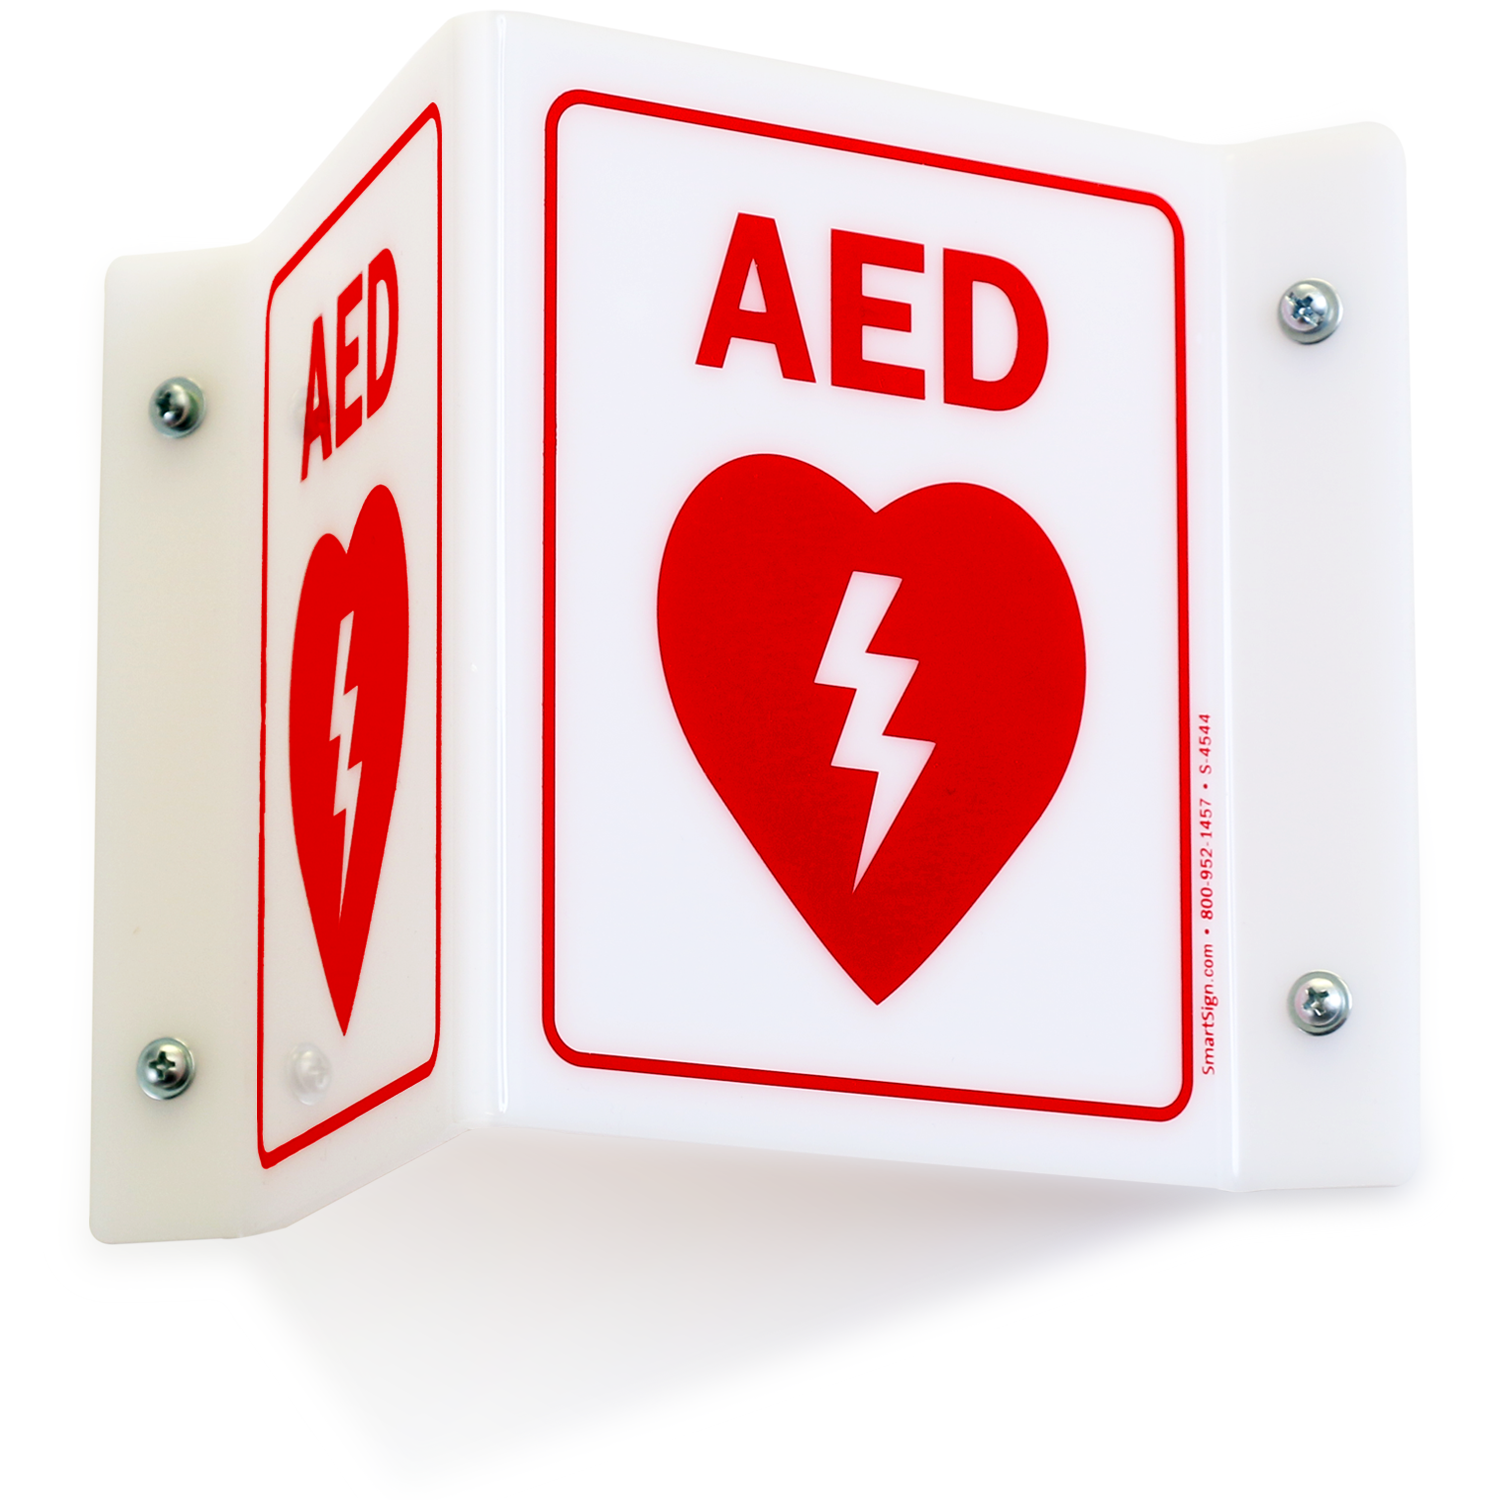 First Aid Signs, First Aid Labels And AED Signs